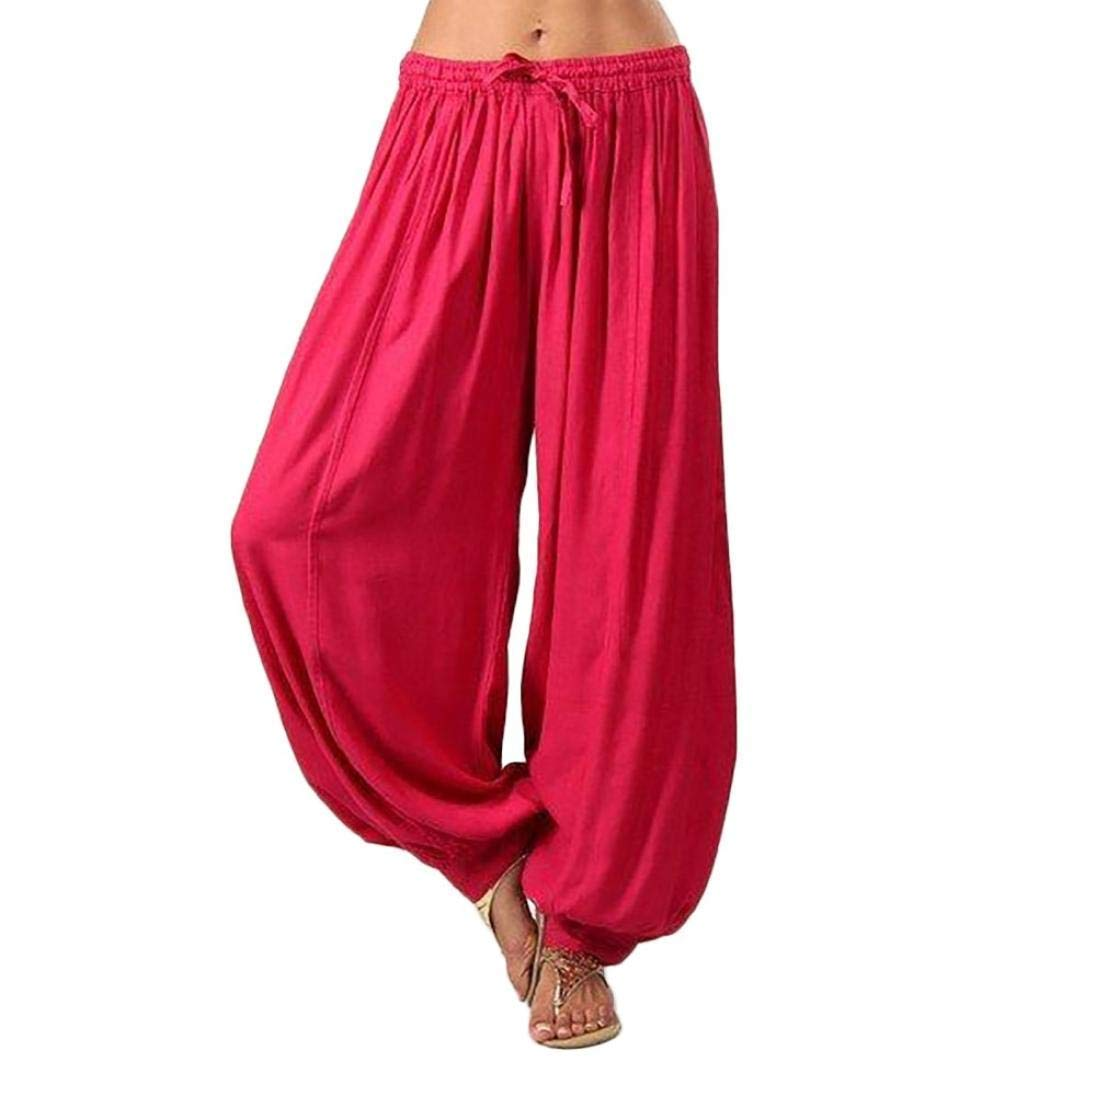 Lady Summer Casual Loose Solid Harem Pants Plus Size Fashion Pants Trousers HOT